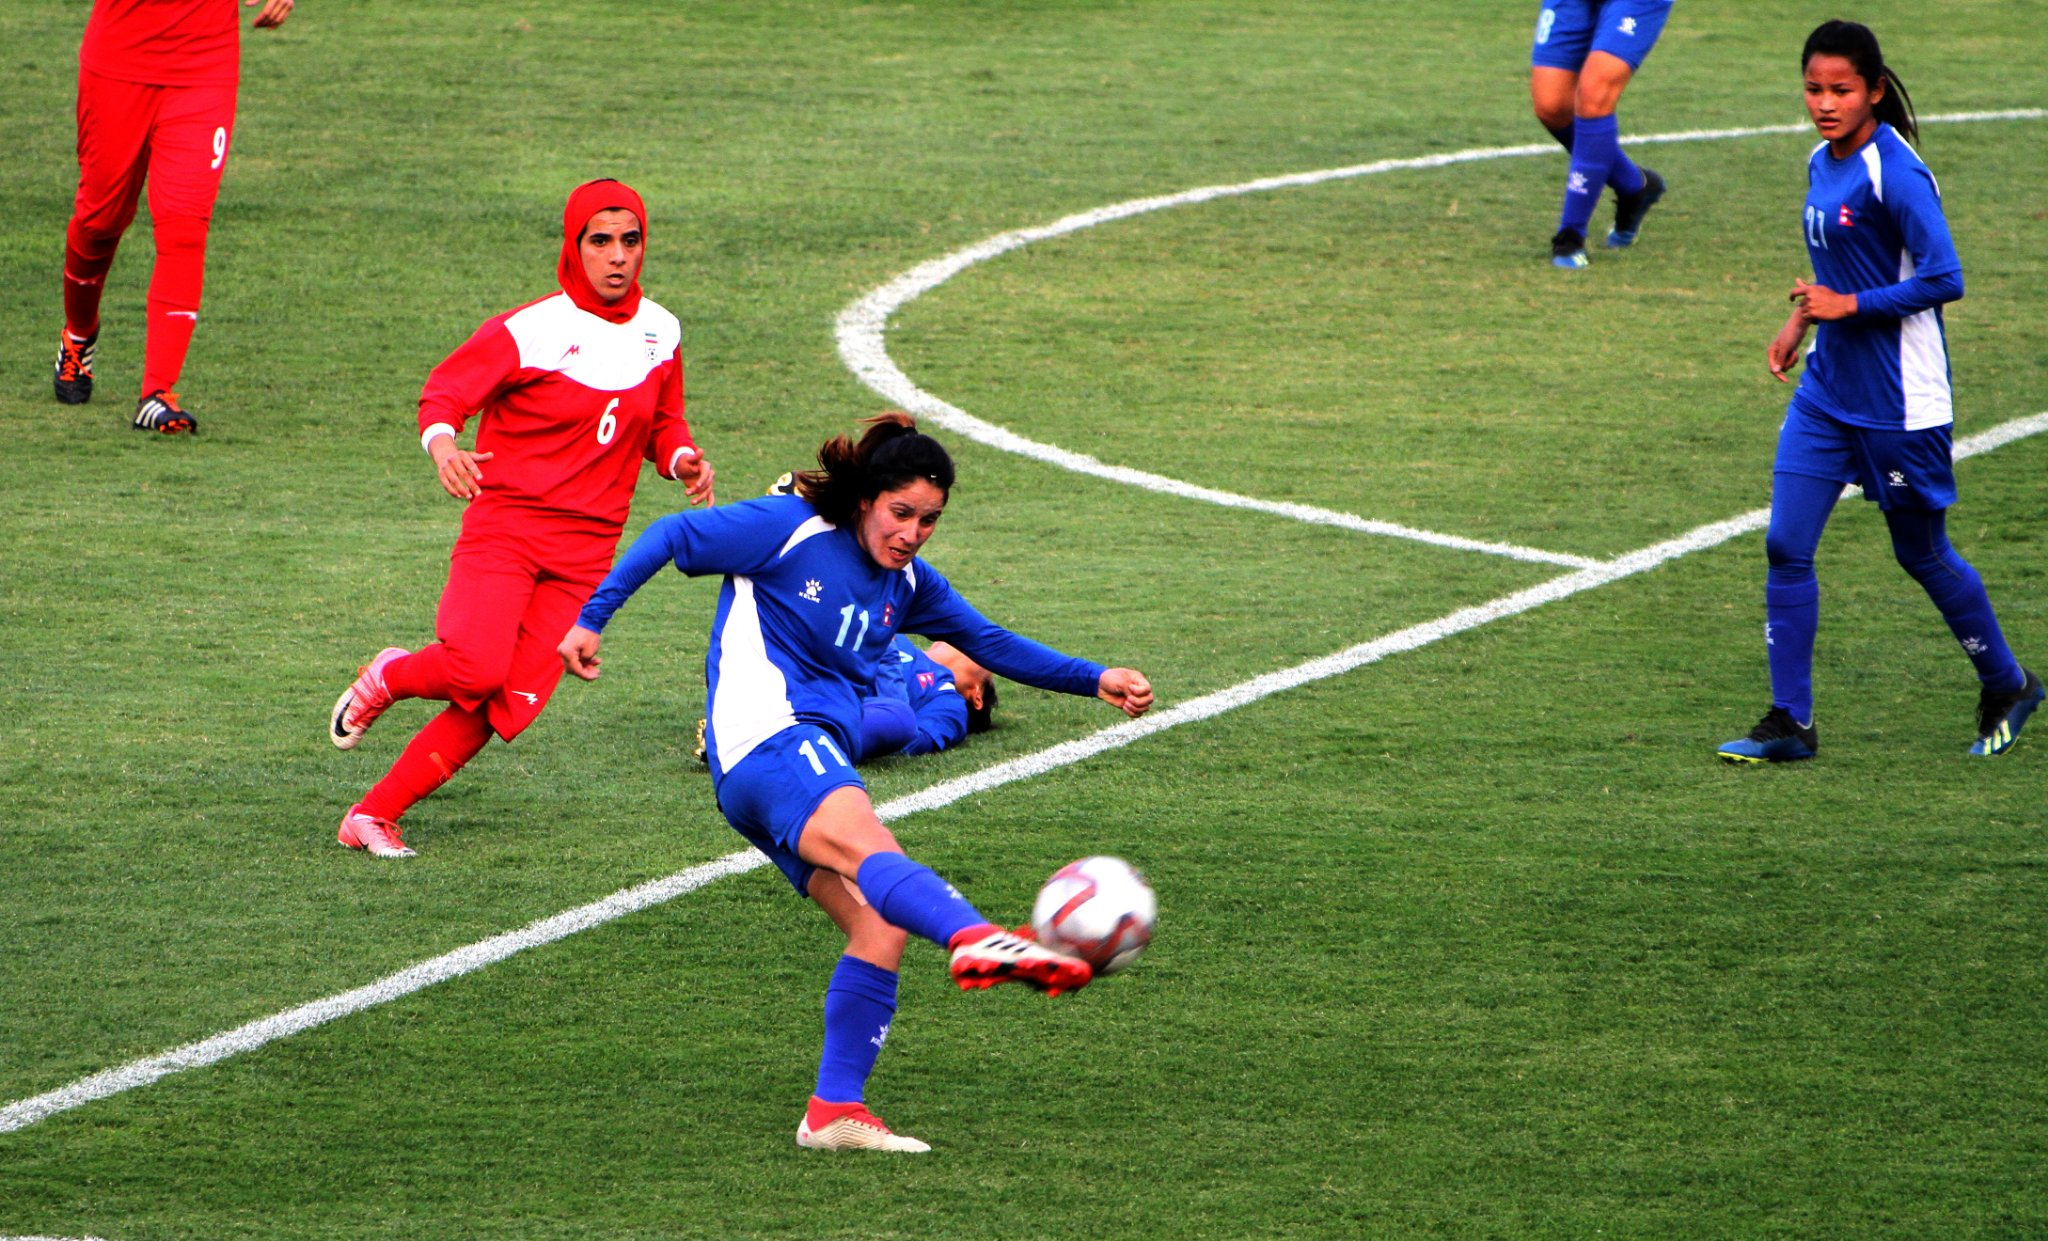 Nepal secures 3-0 win against Iran